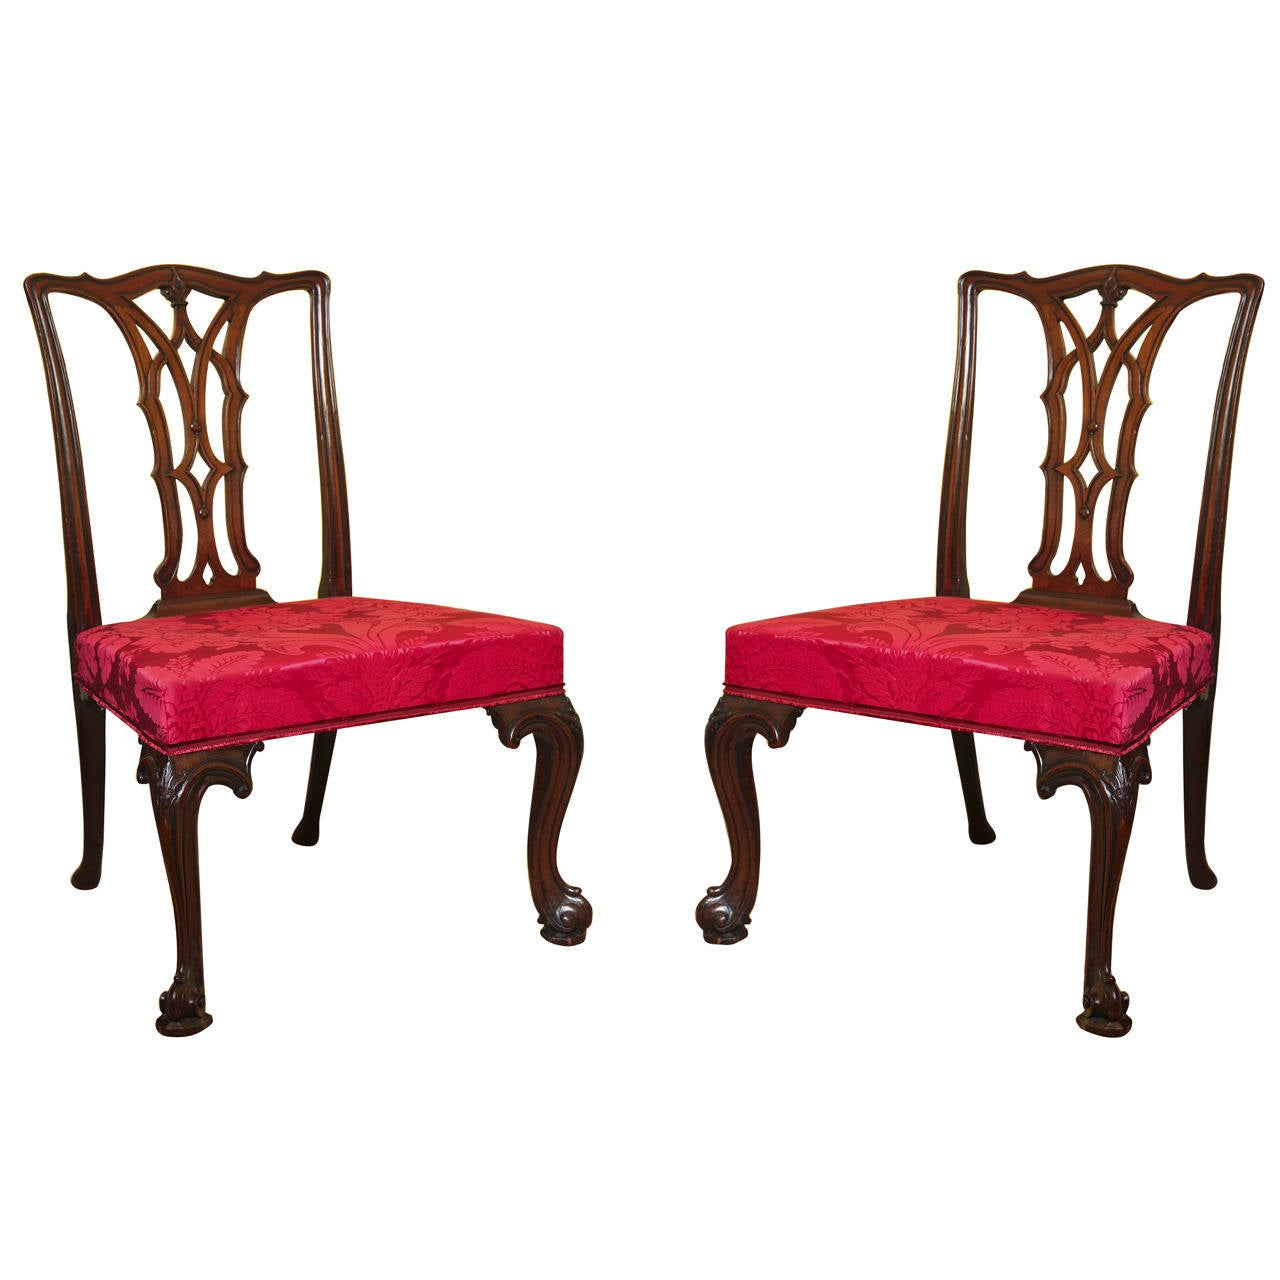 Pair Of Antique Irish Chippendale Carved Mahogany Game Chairs Irish Circa 1770 For Sale At 1stdibs